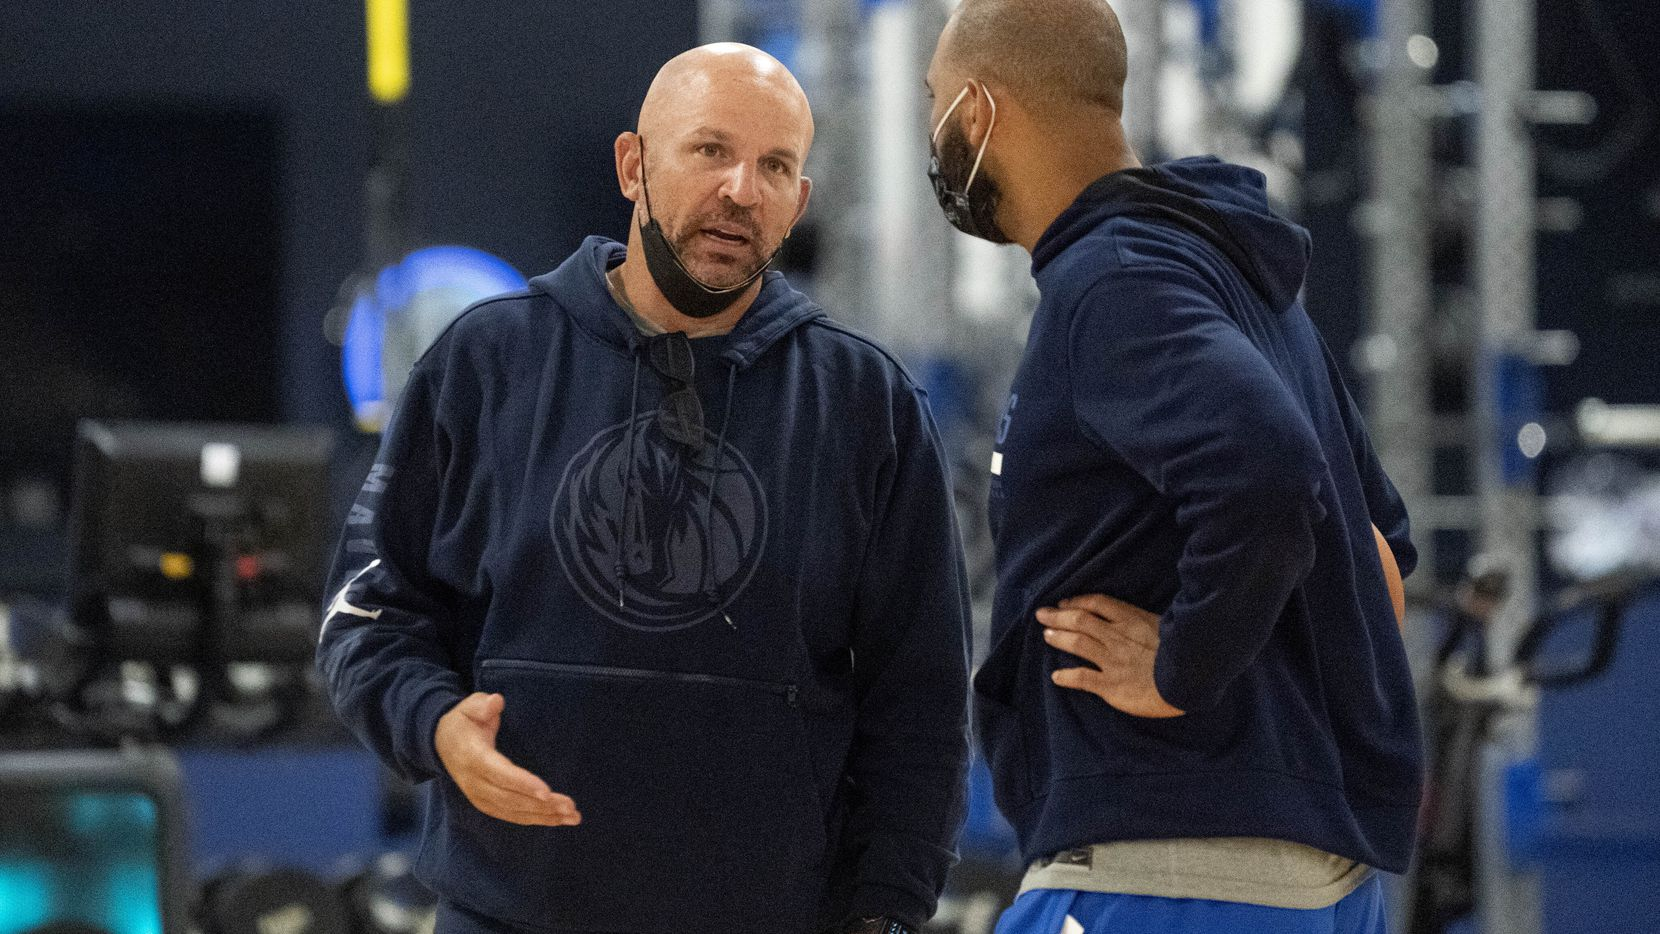 Dallas Mavericks head coach Jason Kidd confers with assistant coach Jared Dudley during the first practice of training camp, Tuesday, September 28, 2021 at the Dallas Mavericks Training Center in Dallas. (Jeffrey McWhorter/Special Contributor)